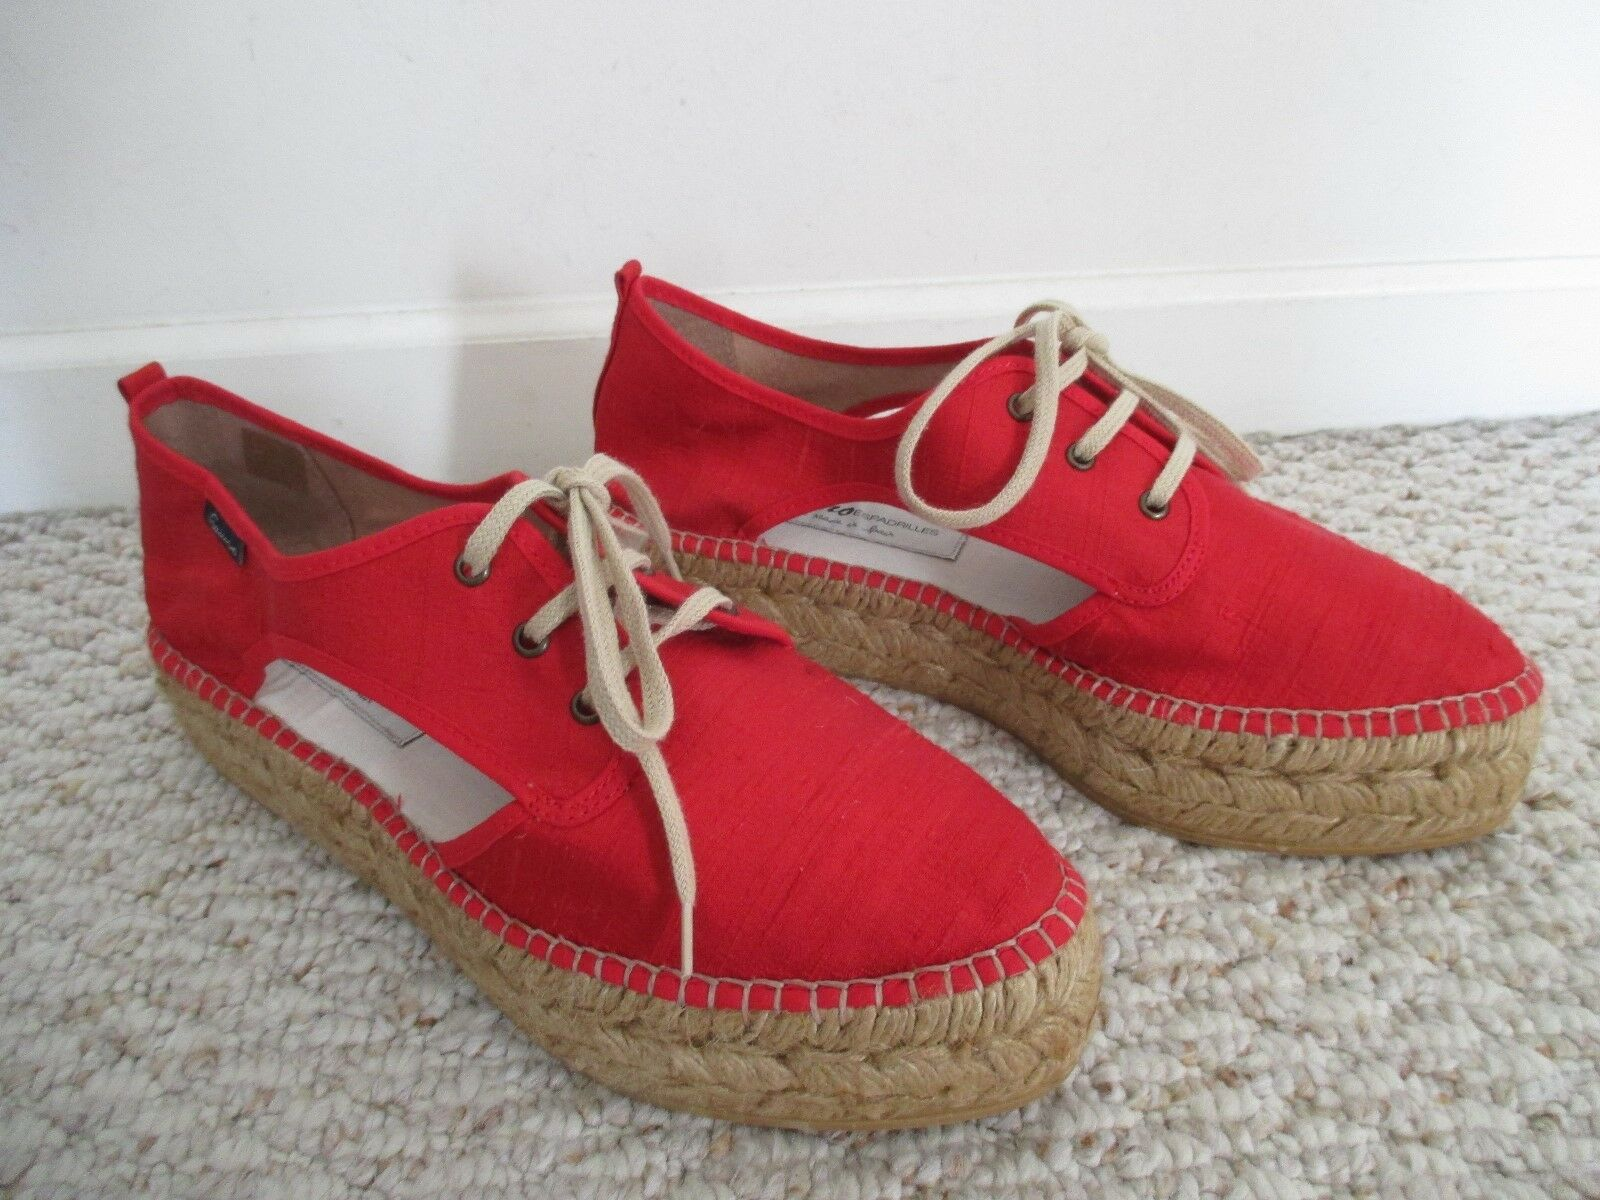 Gaimo Espadrille ROT ROT ROT Lace-Up Schuhes Größe 40 NEW Made in Spain bc8705